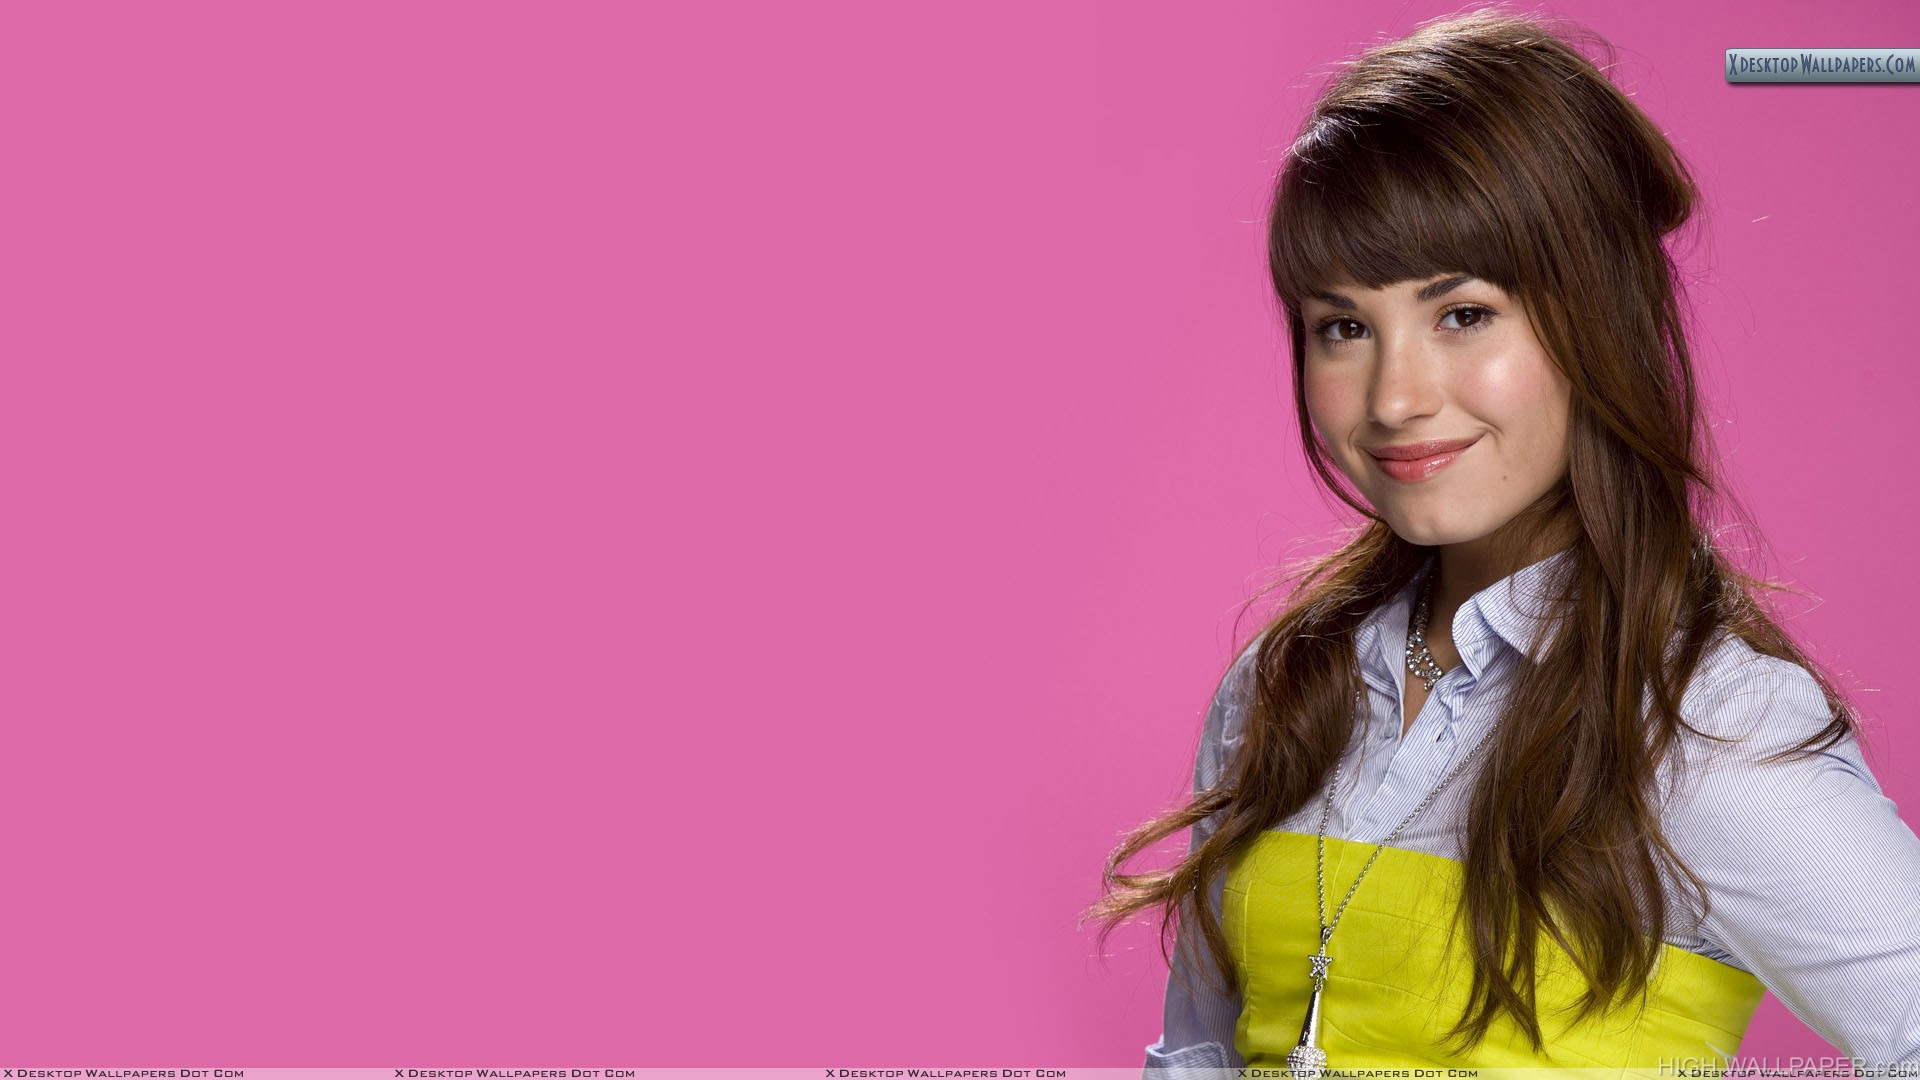 Demi Lovato Smiling In White Top And Pink Background